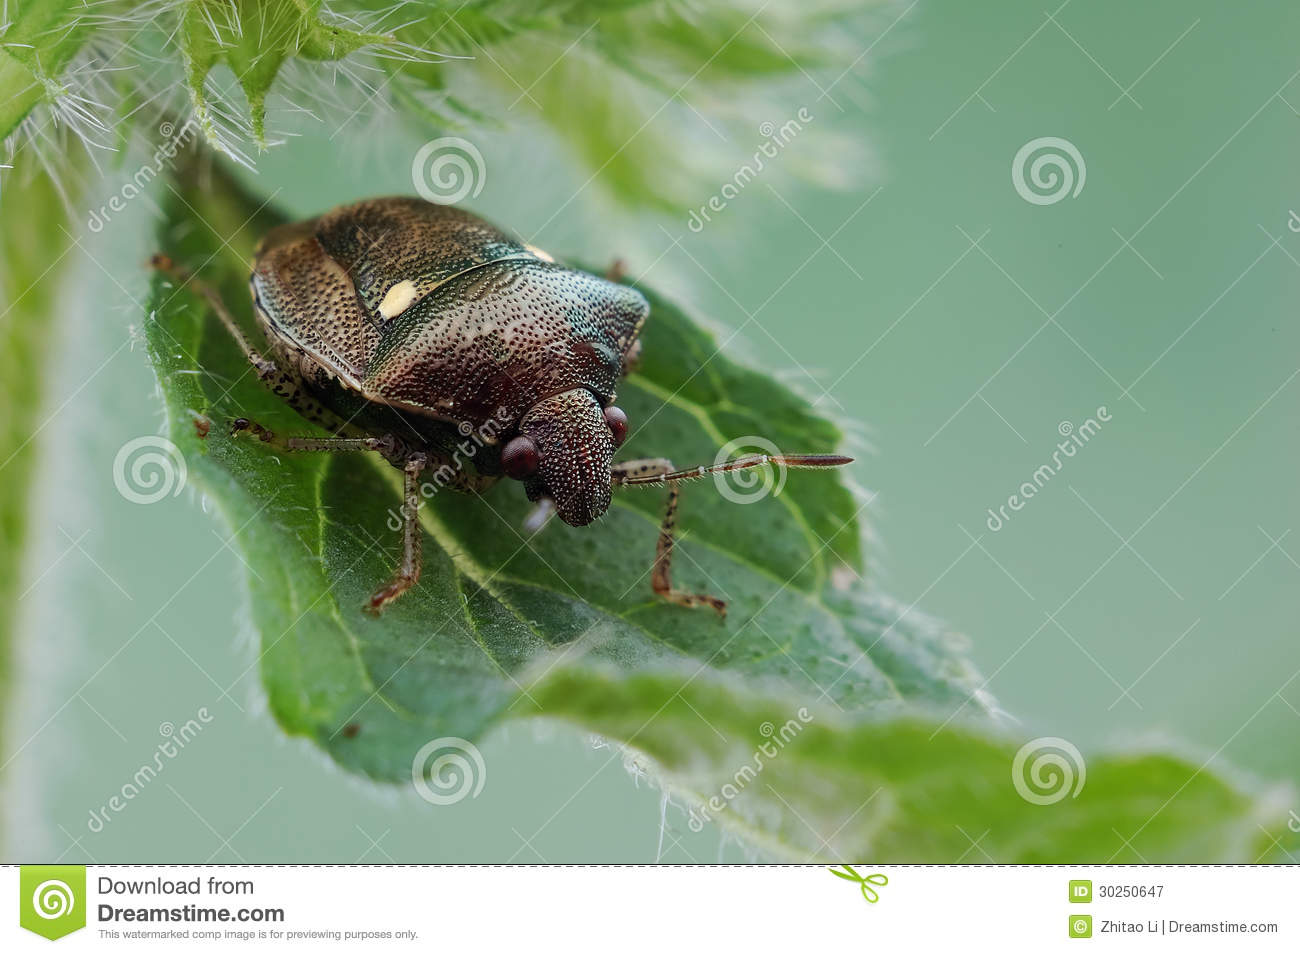 Stink insect